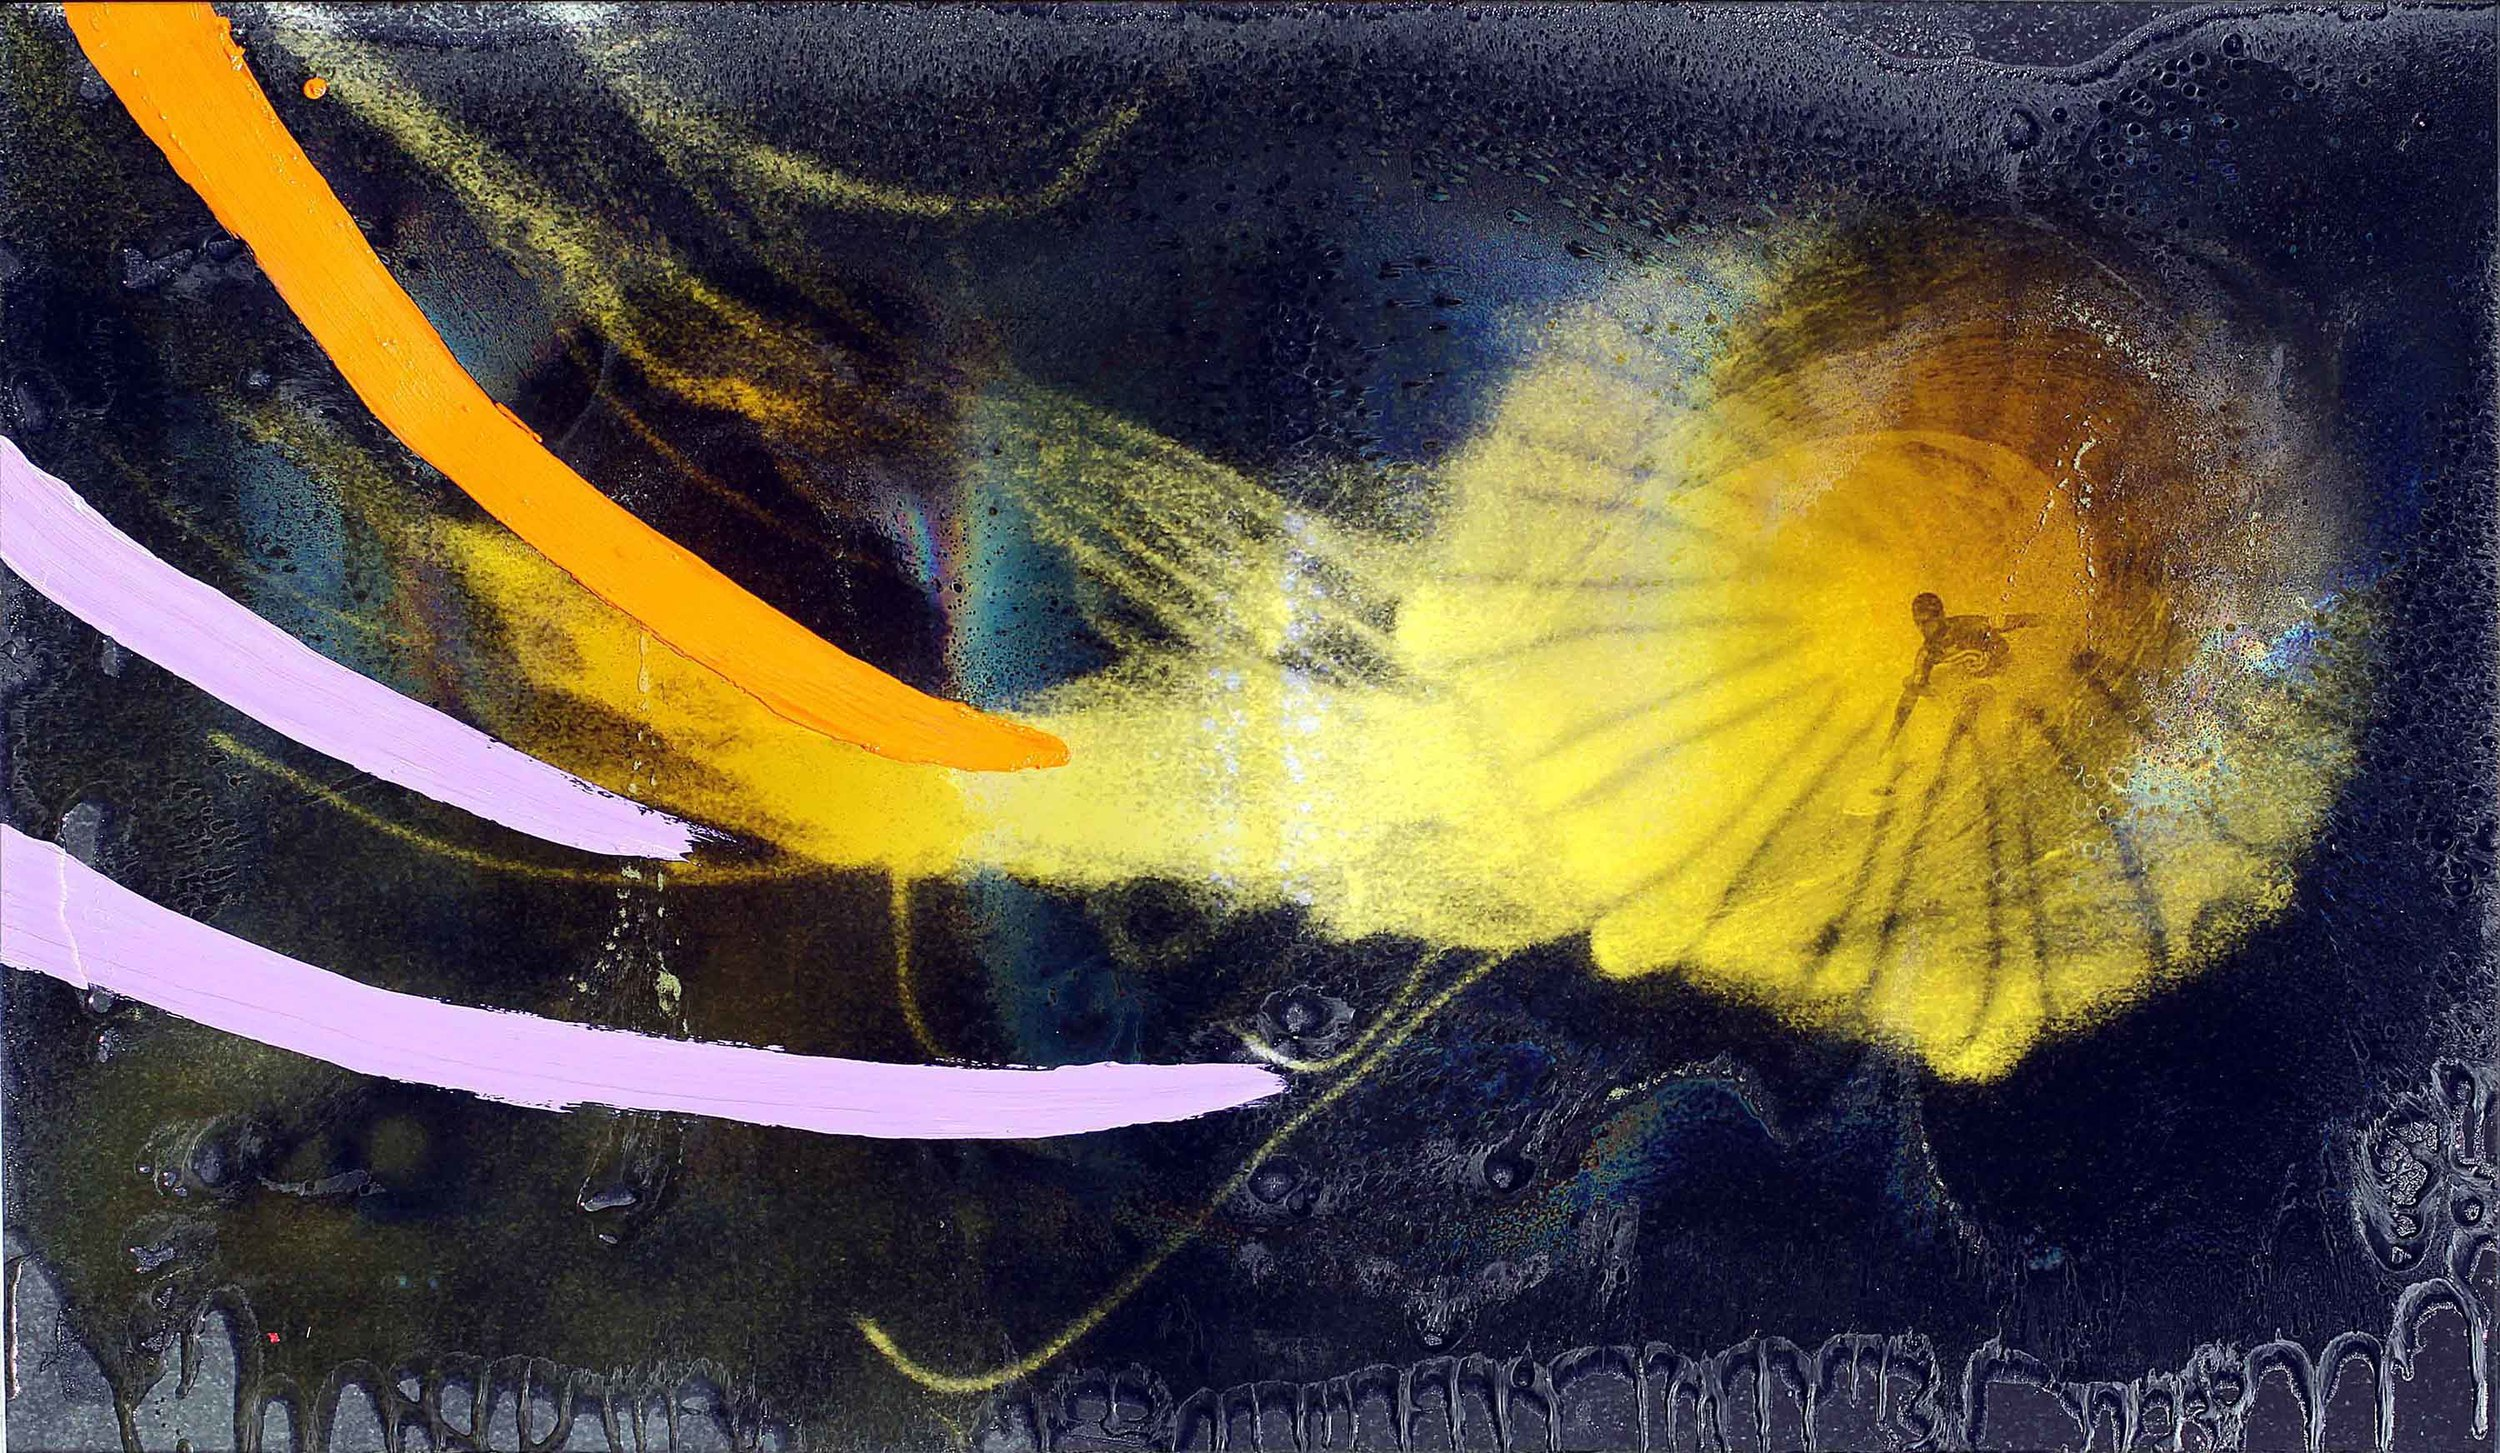 - - 0 - Ink, Oil, Resin & Fiberglass on Canvas PAINTING Andy Jellyfish IMG_3274-CC-F-C-S TEXT P2.jpg